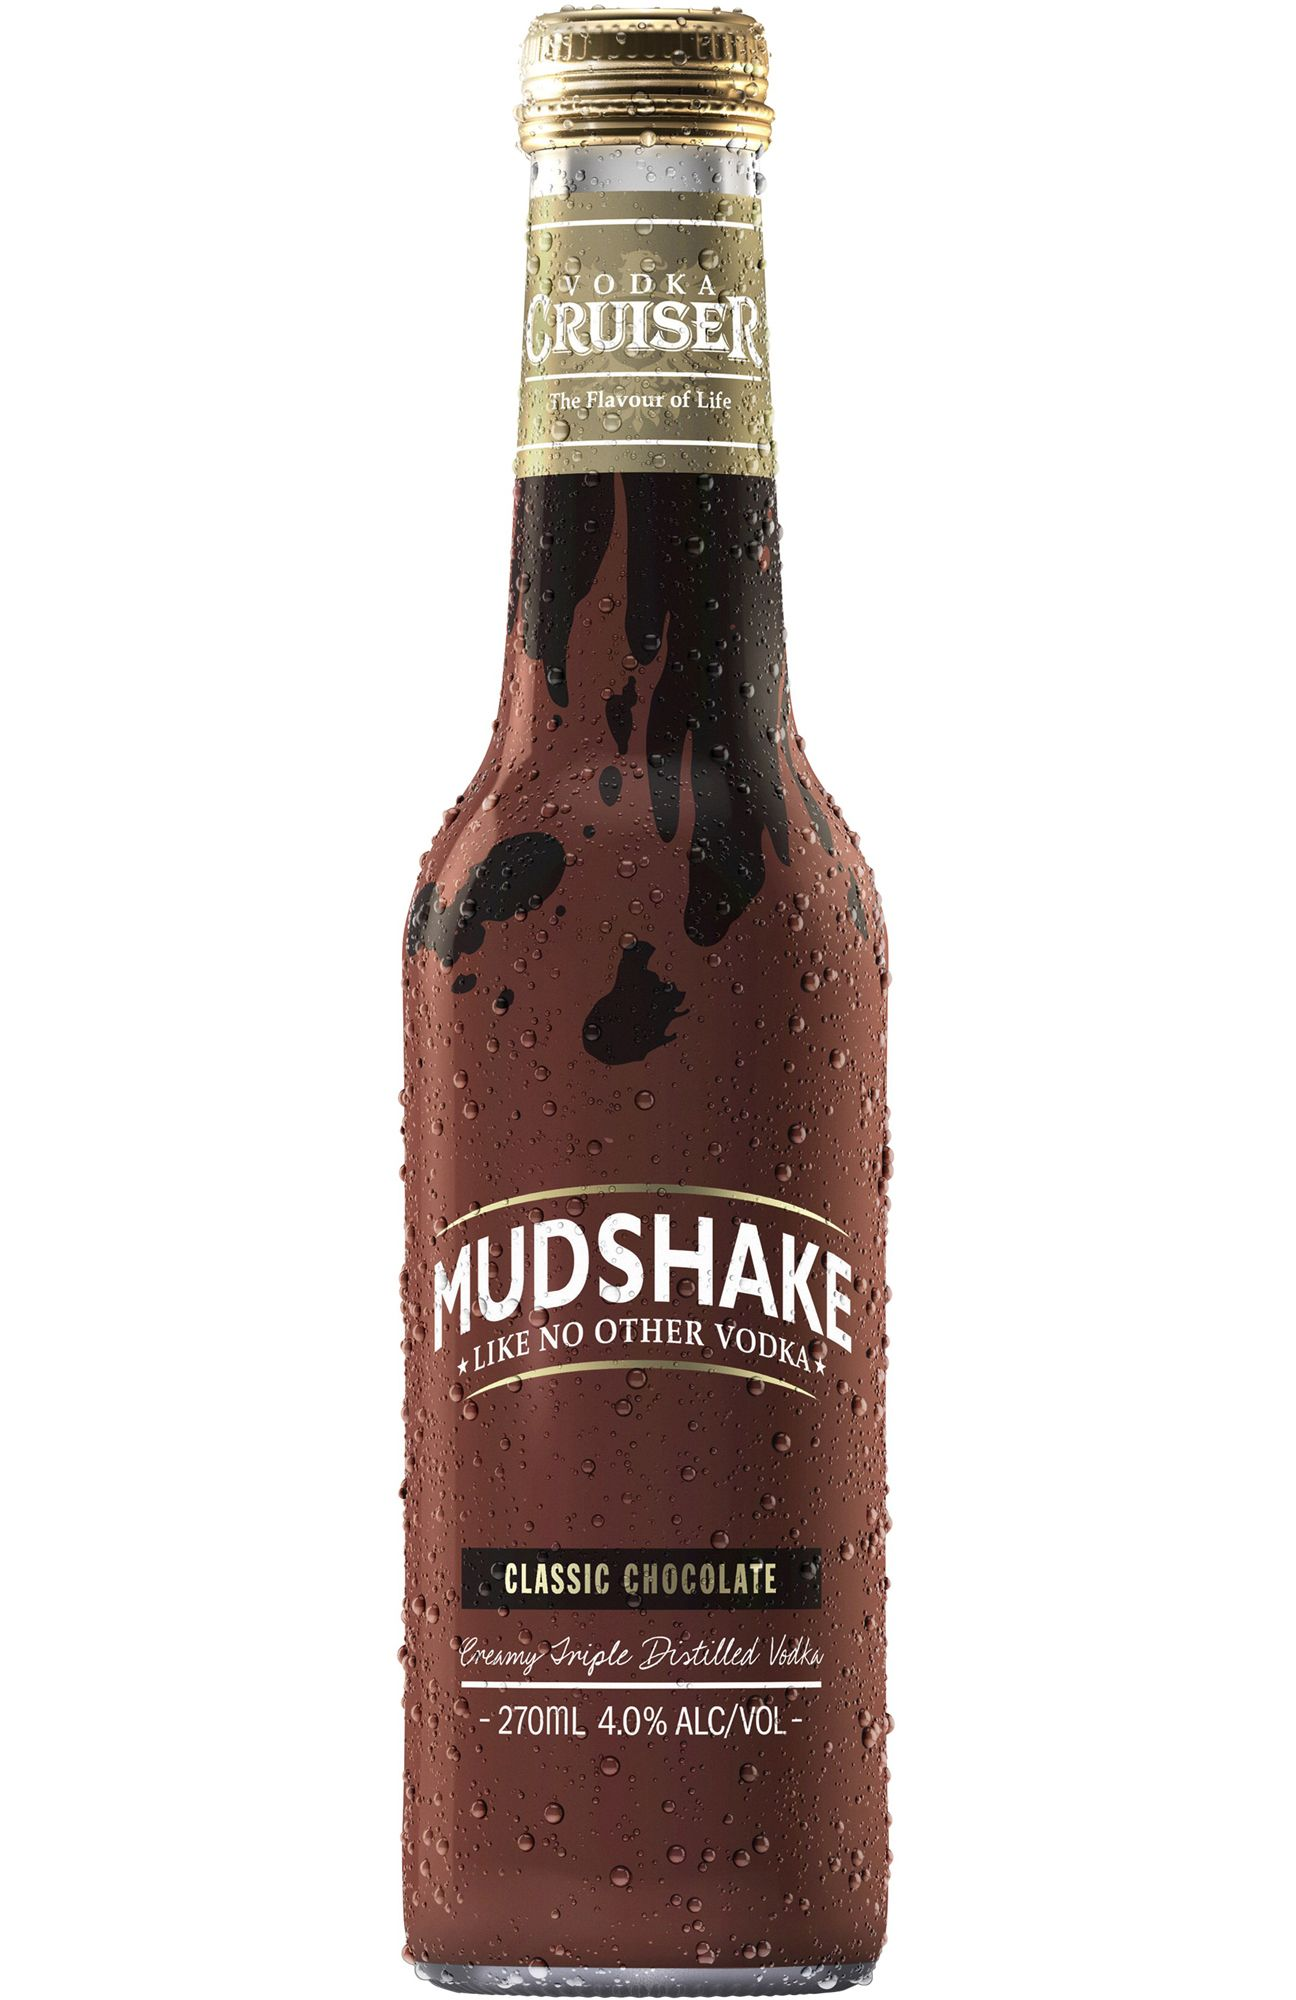 Vodka Cruiser Mudshake Chocolate 270m | spirits | Pinterest ...